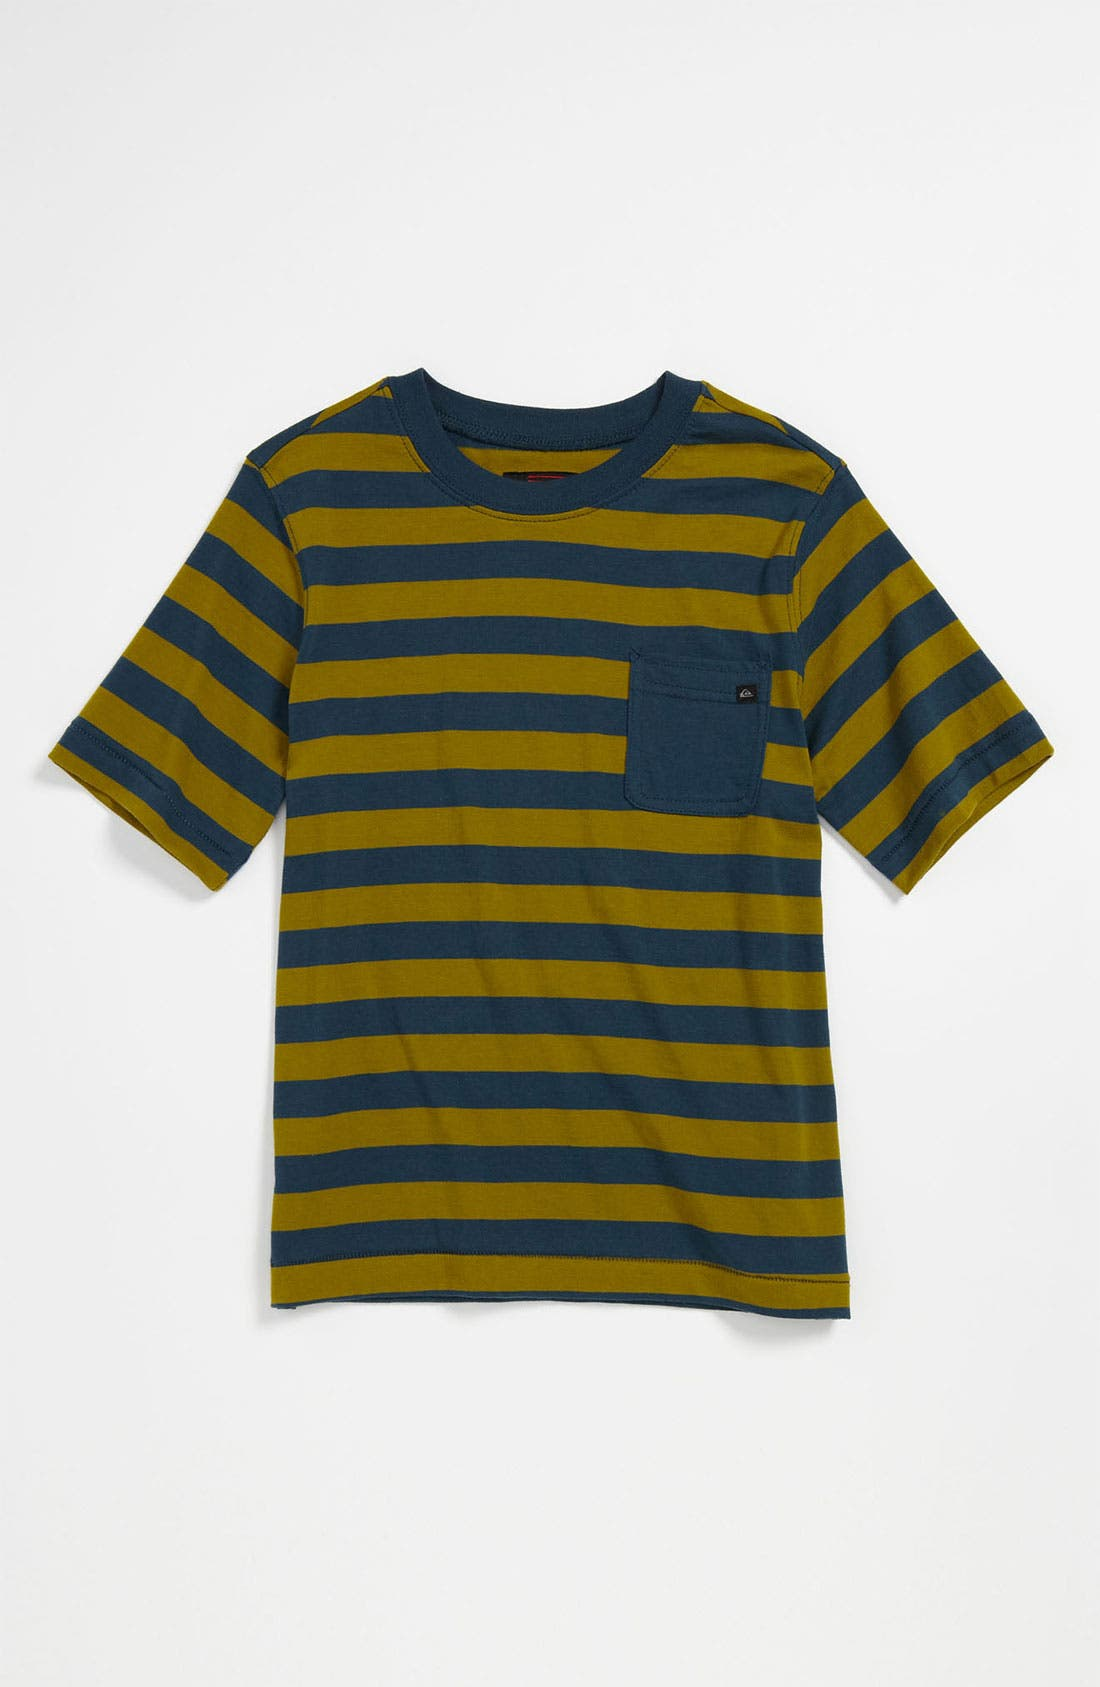 Main Image - Quiksilver 'Nolf' Crewneck T-Shirt (Little Boys)